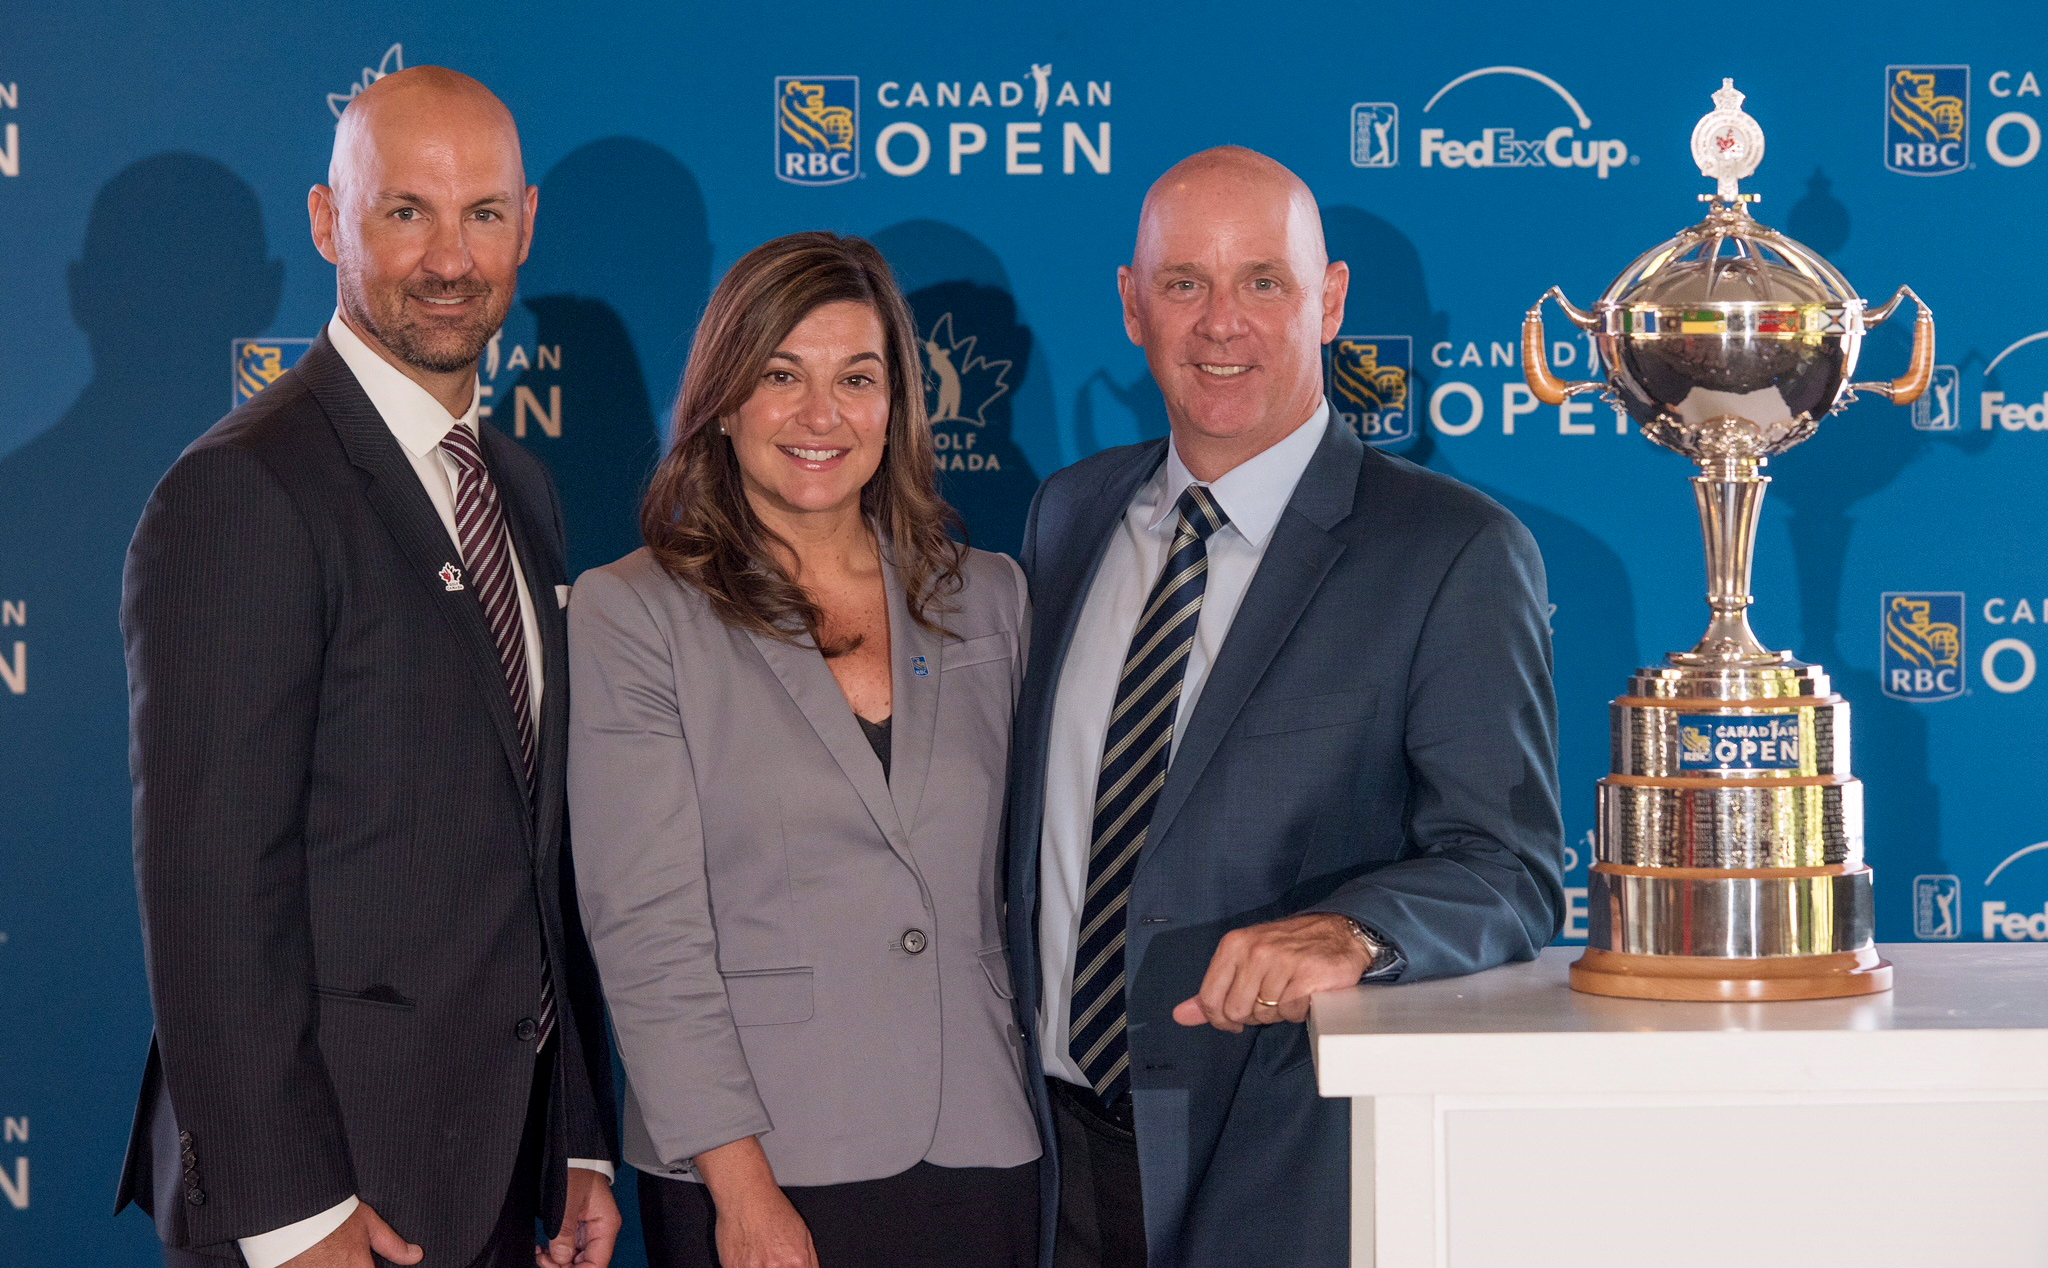 Laurence Applebaum, CEO, Golf Canada, Mary DePaoli, Executive Vice President Chief Marketing Officer, RBC, and Andy Pazder, Executive Vice President and Chief of Operations for the PGA TOUR announce new 2019 date for RBC Canadian Open